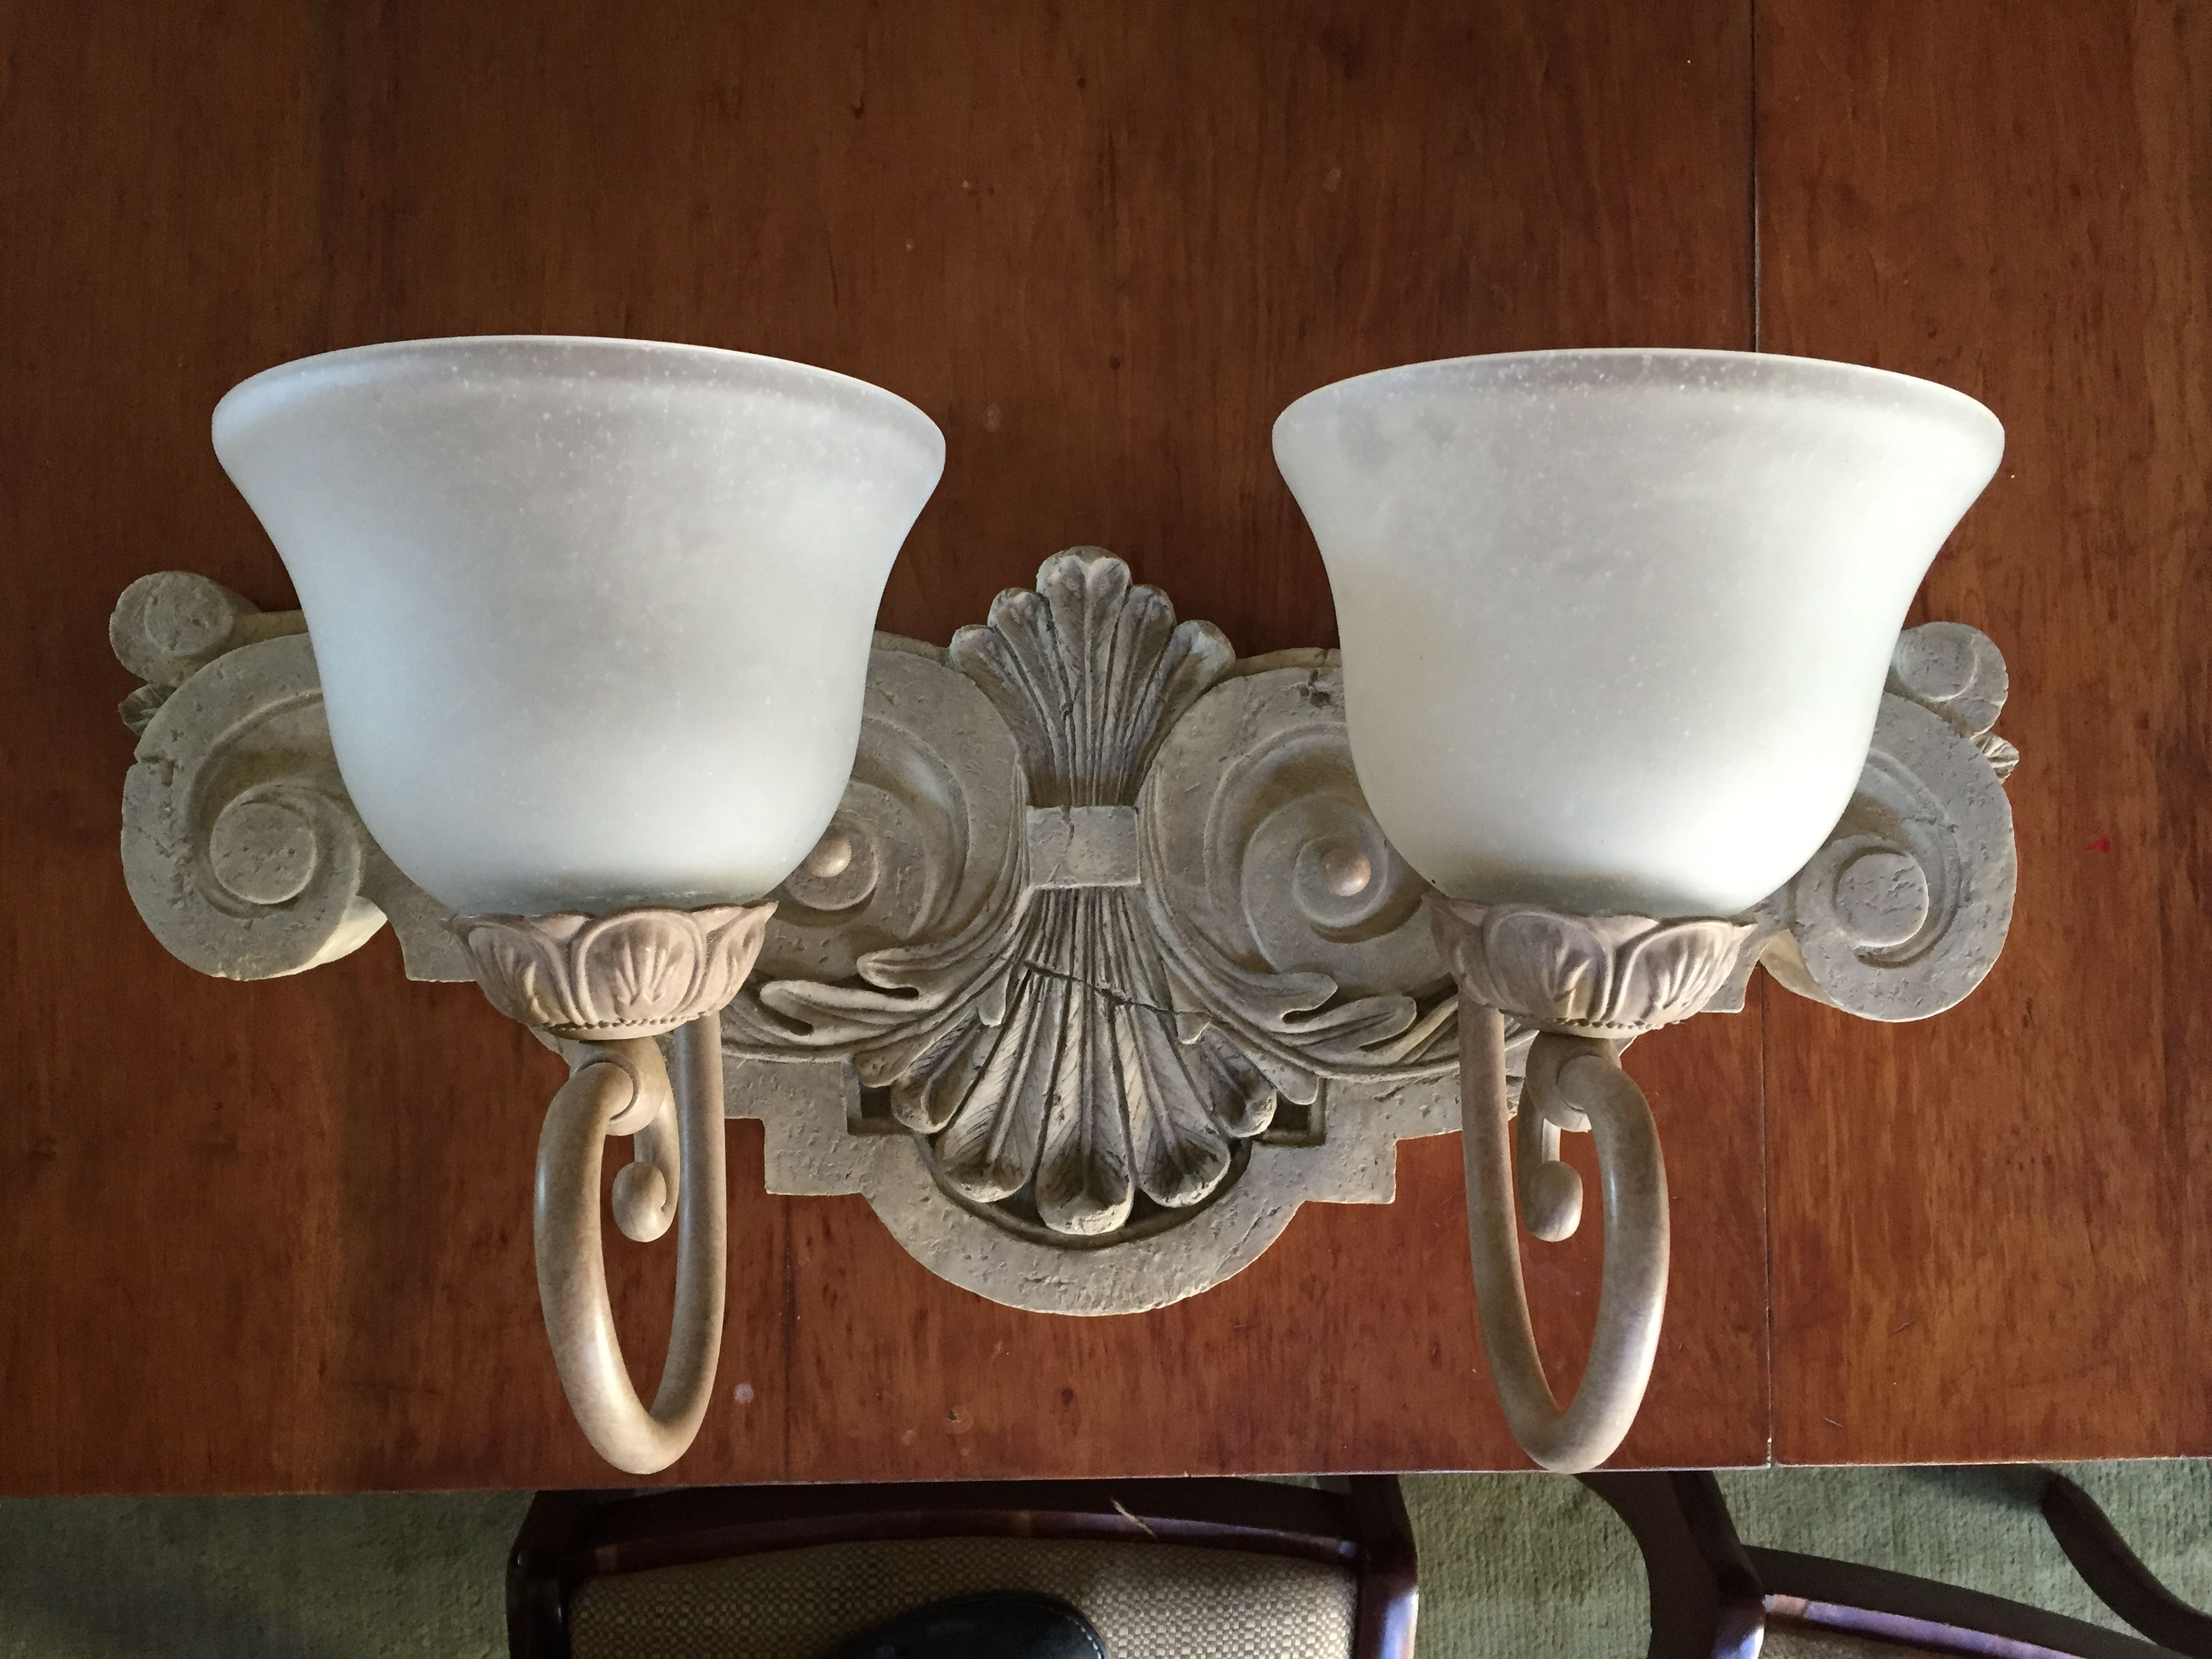 $30 Wall mount light fixture  Heavy, great condition